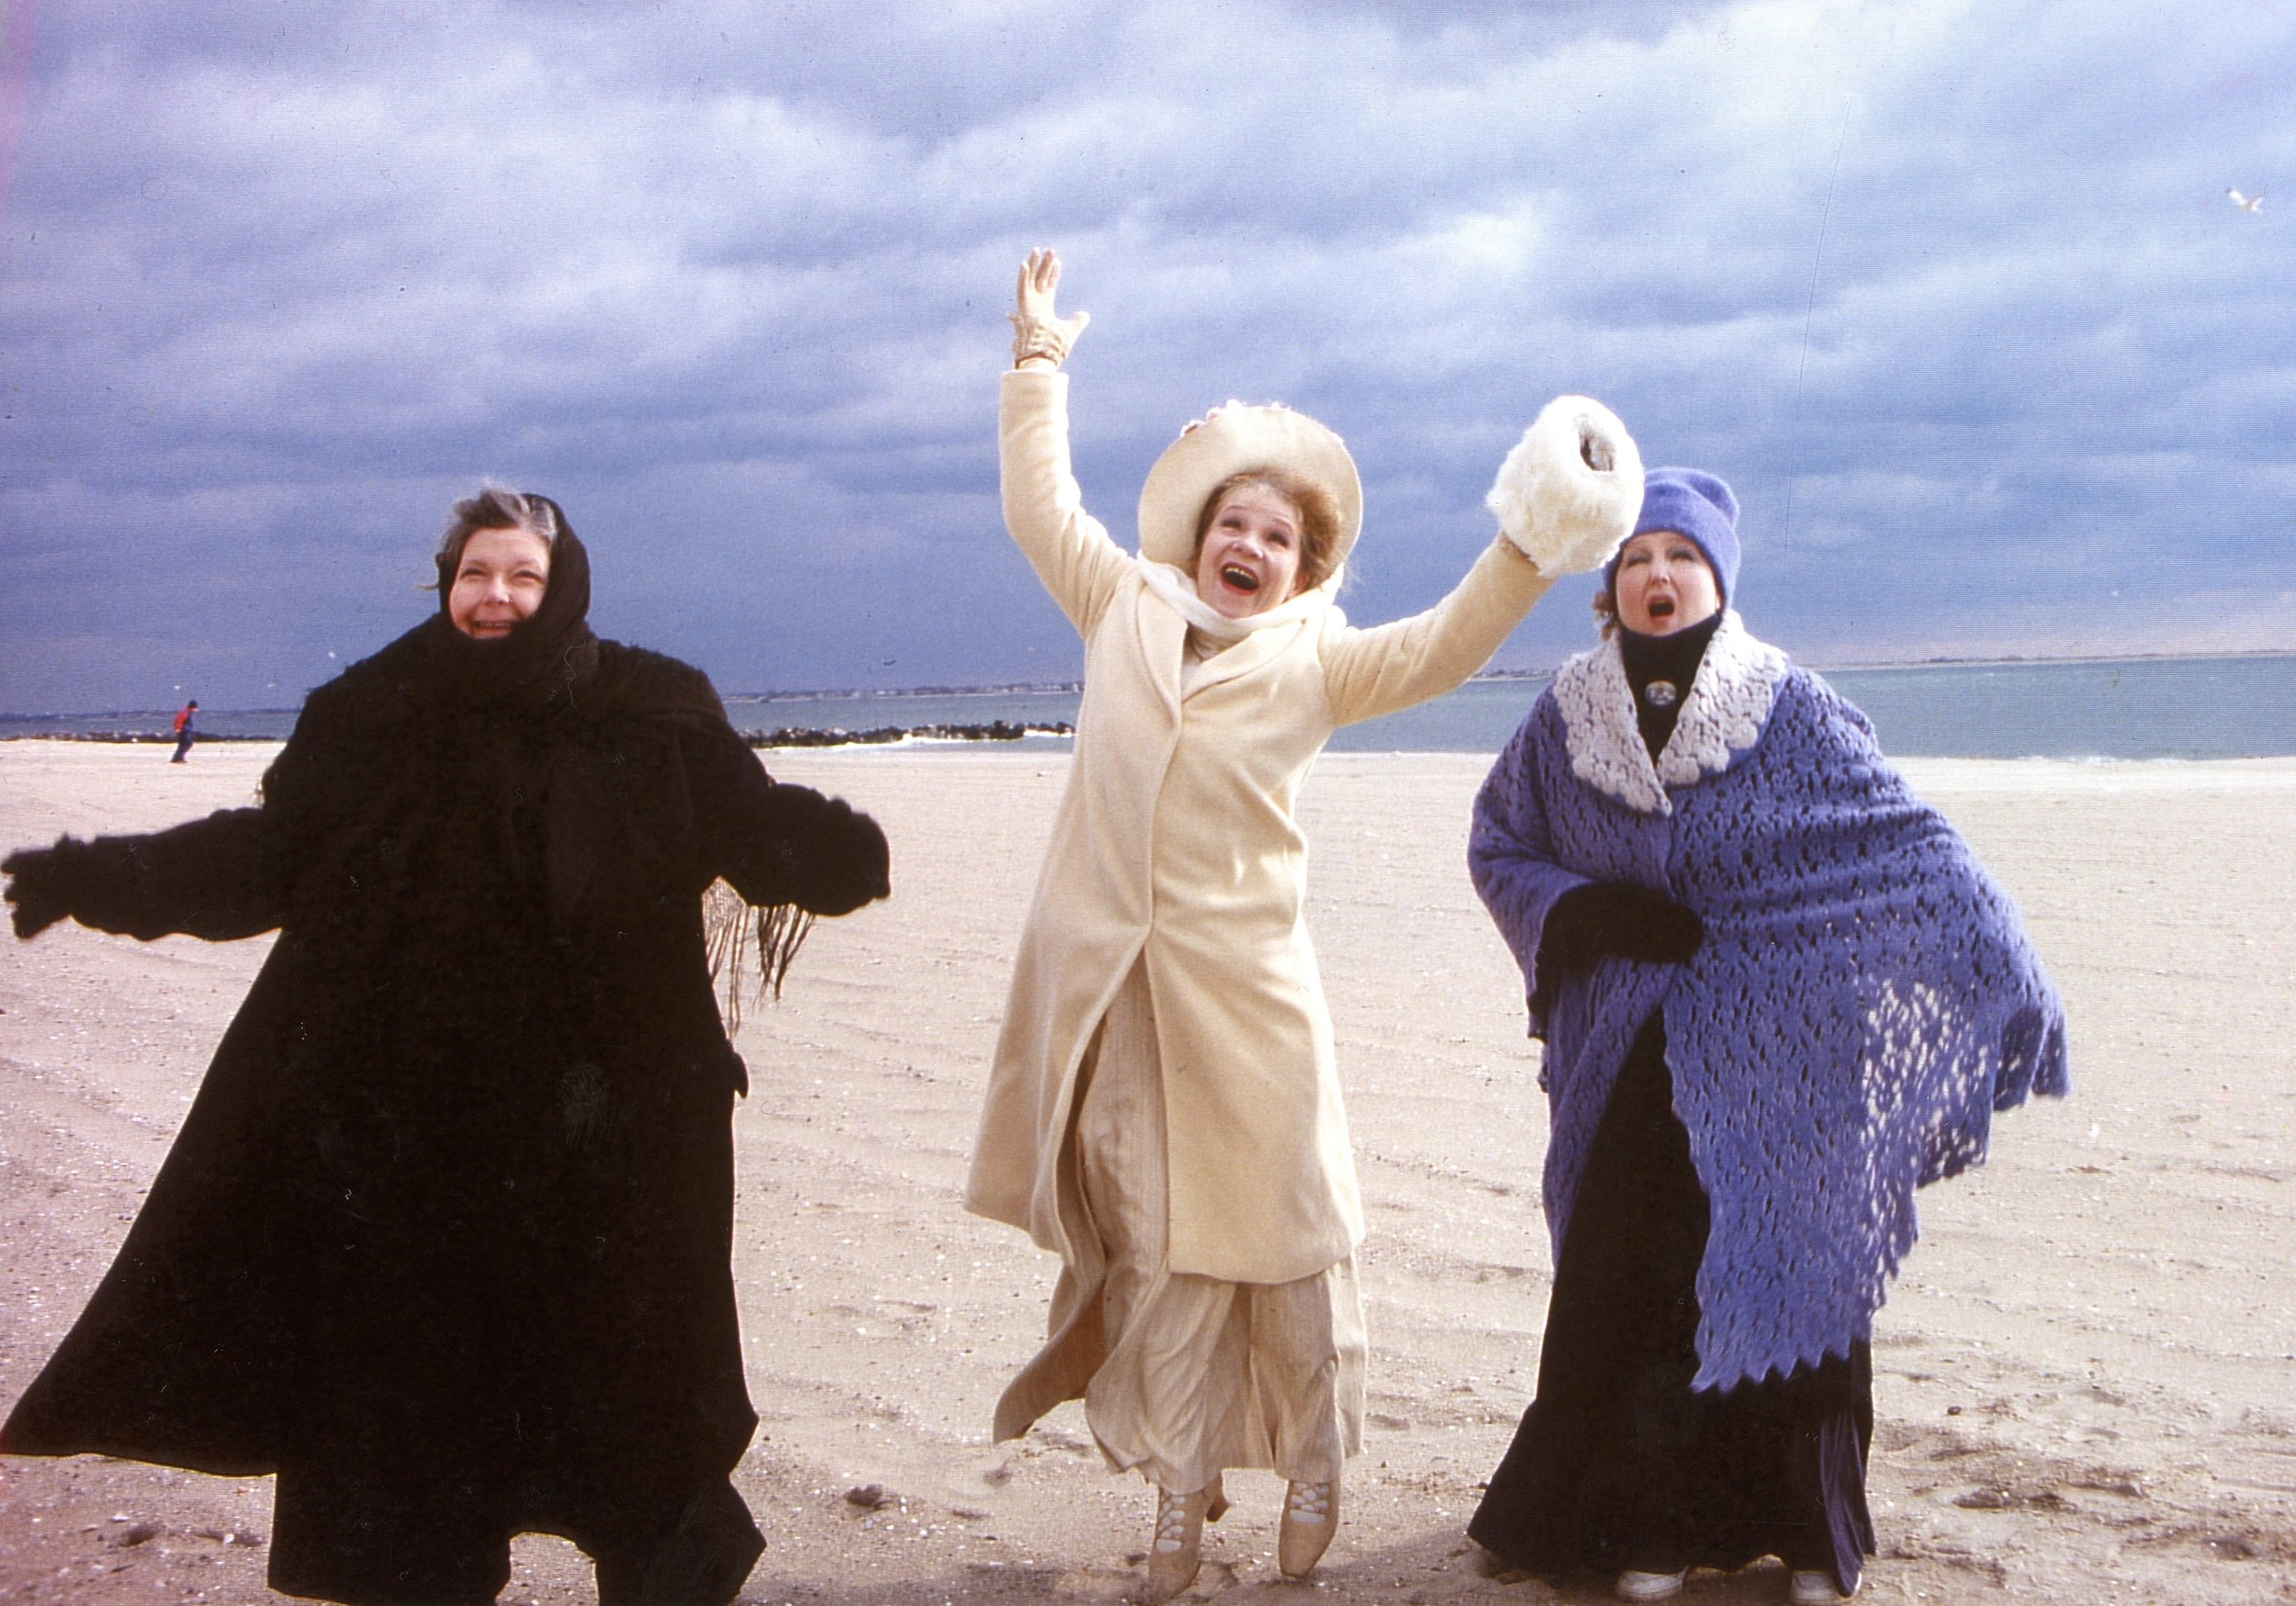 THREE SISTERS, MCC Theater, New York, 1998